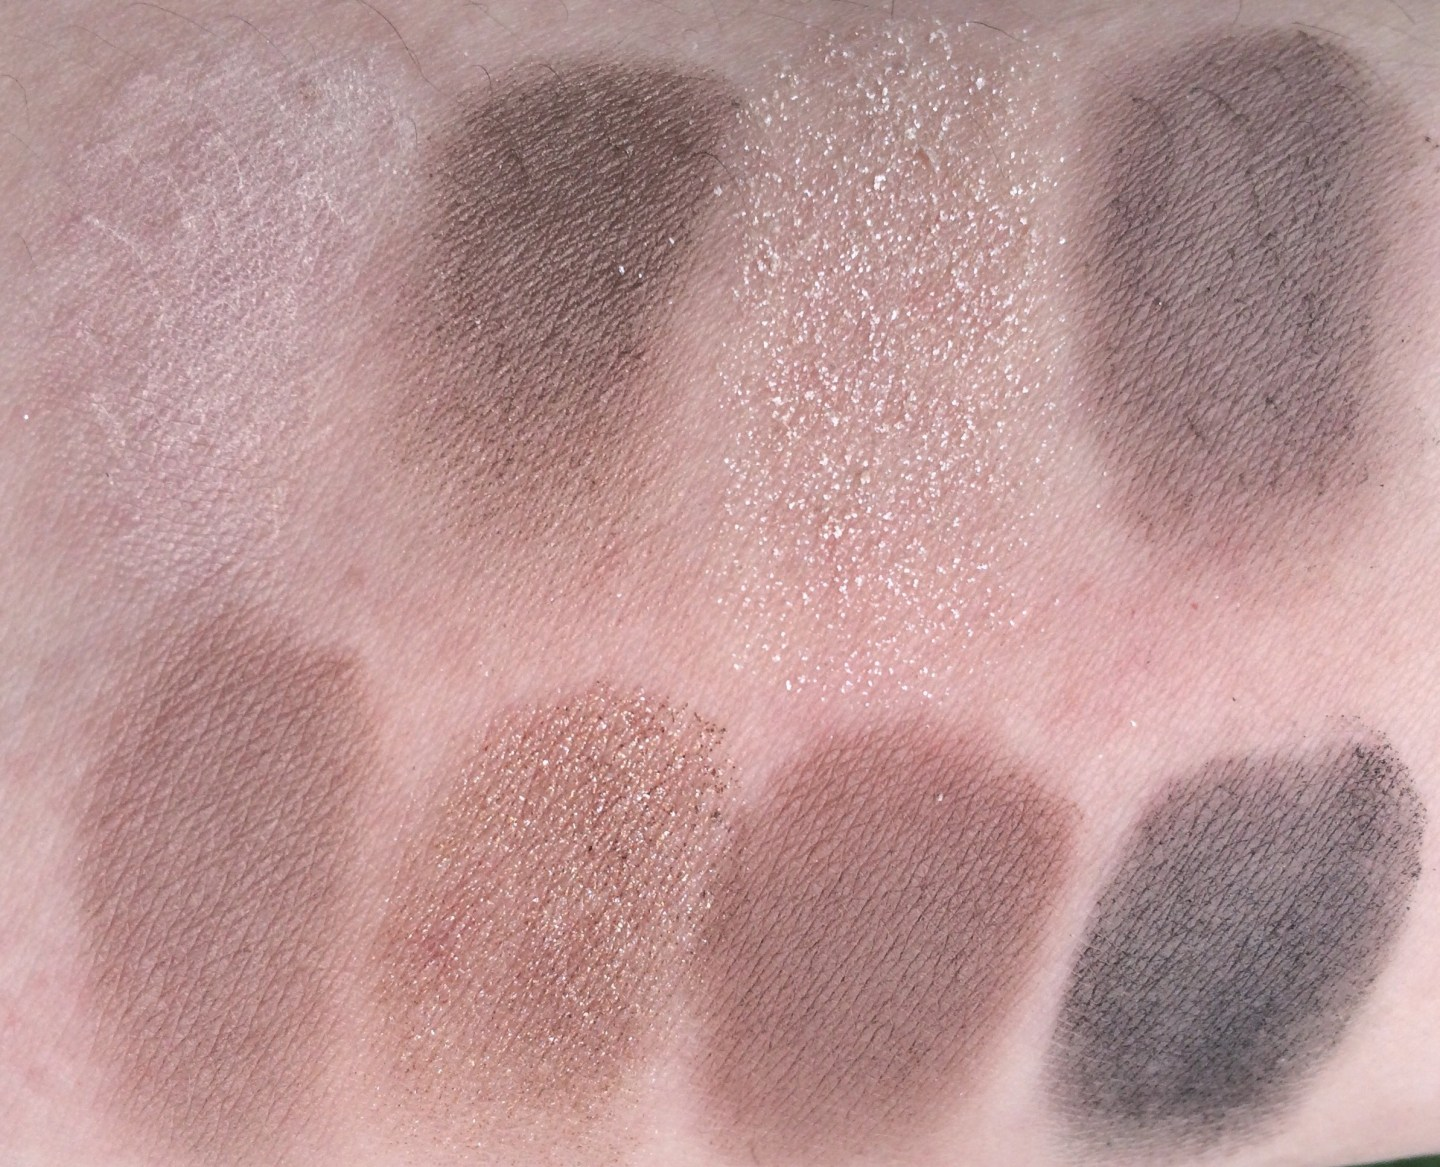 Bobbi Brown Greige Eye Palette Swatches